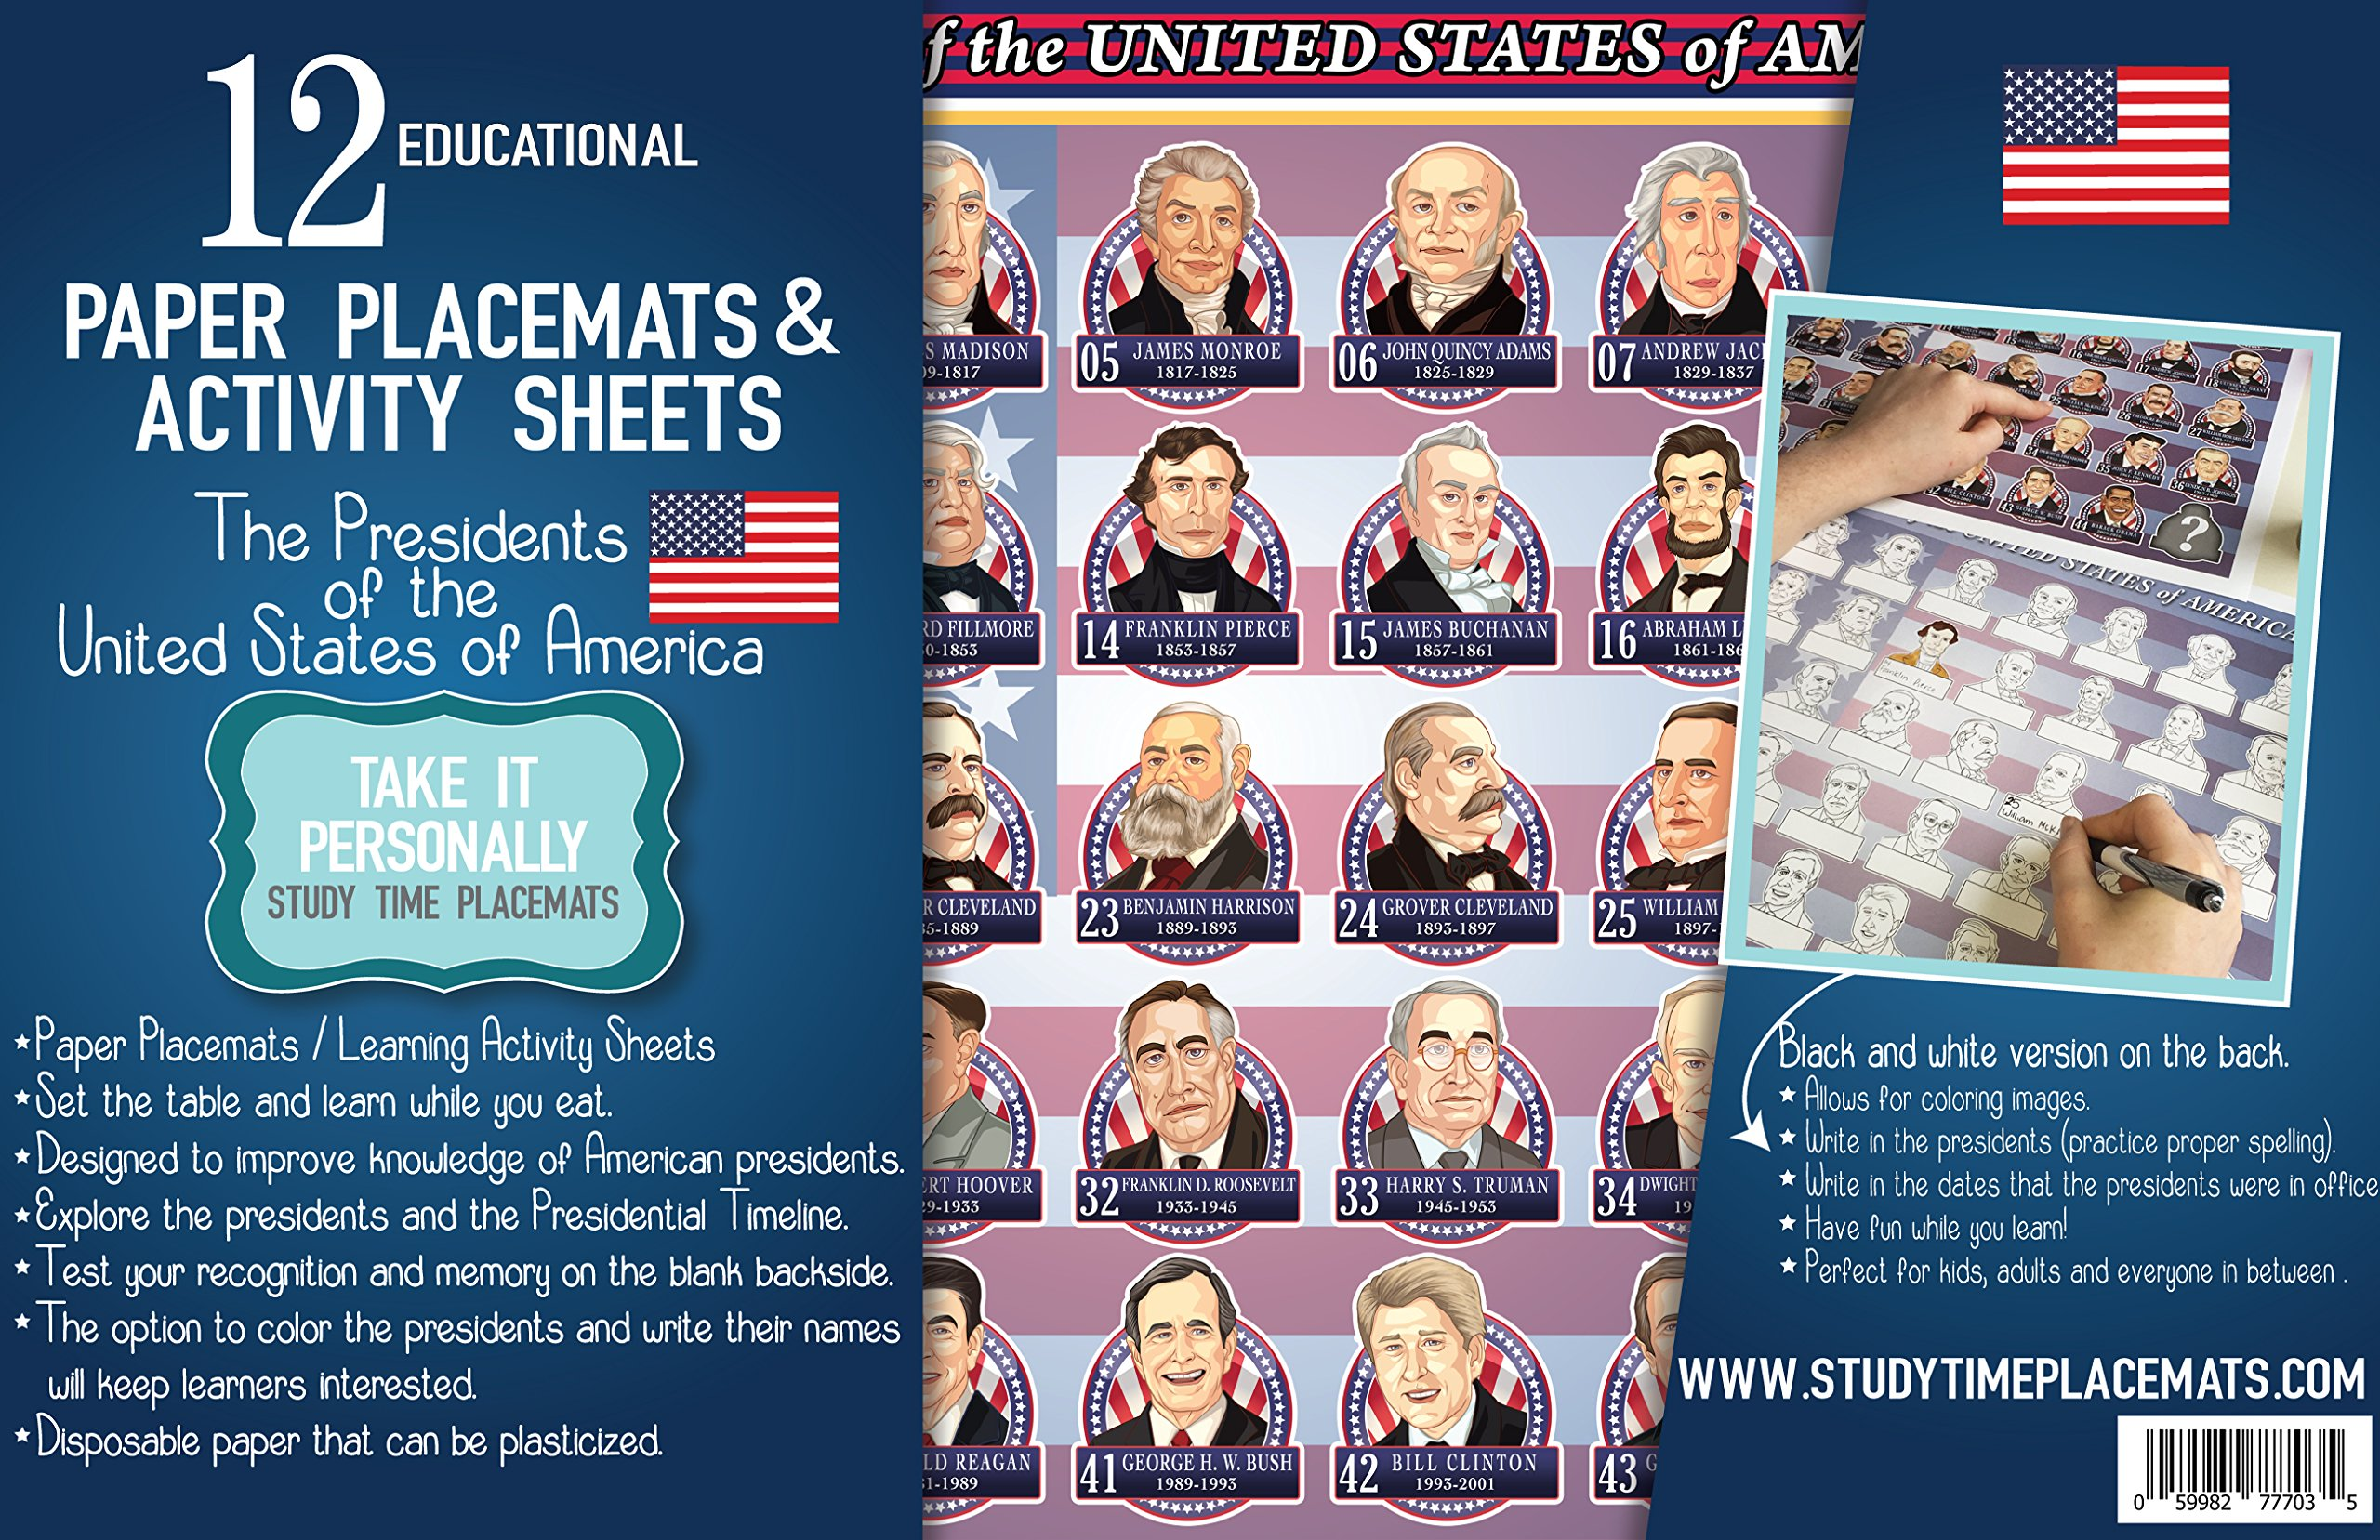 12 Educational Paper Placemats and The Presidents of The United States of America